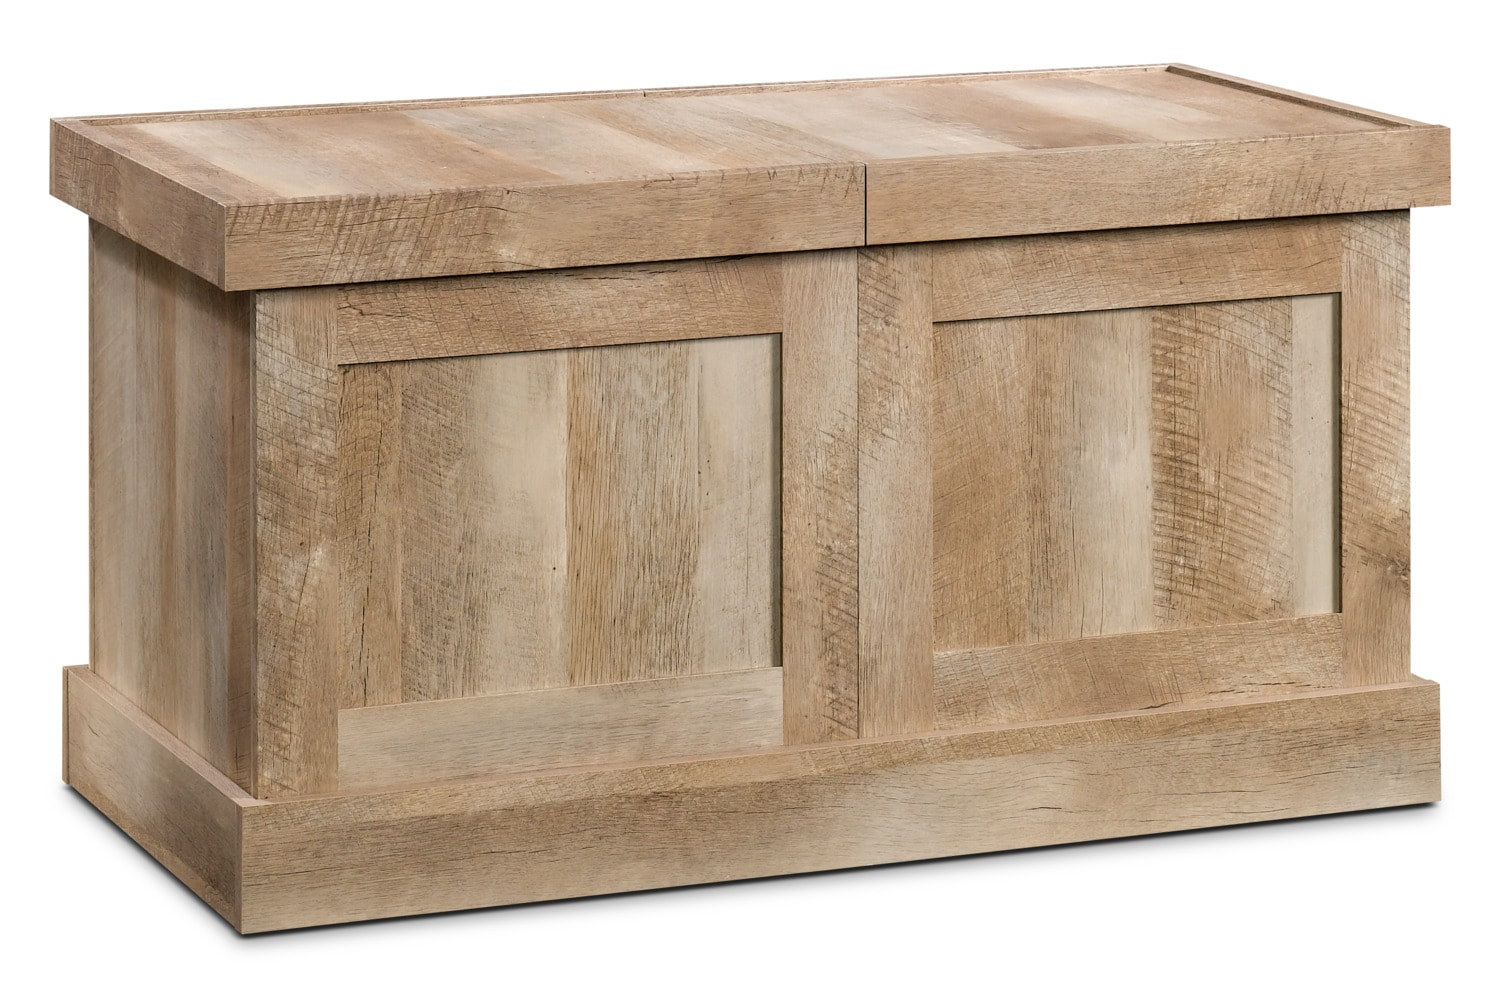 Cannery Bridge Crate Coffee Table